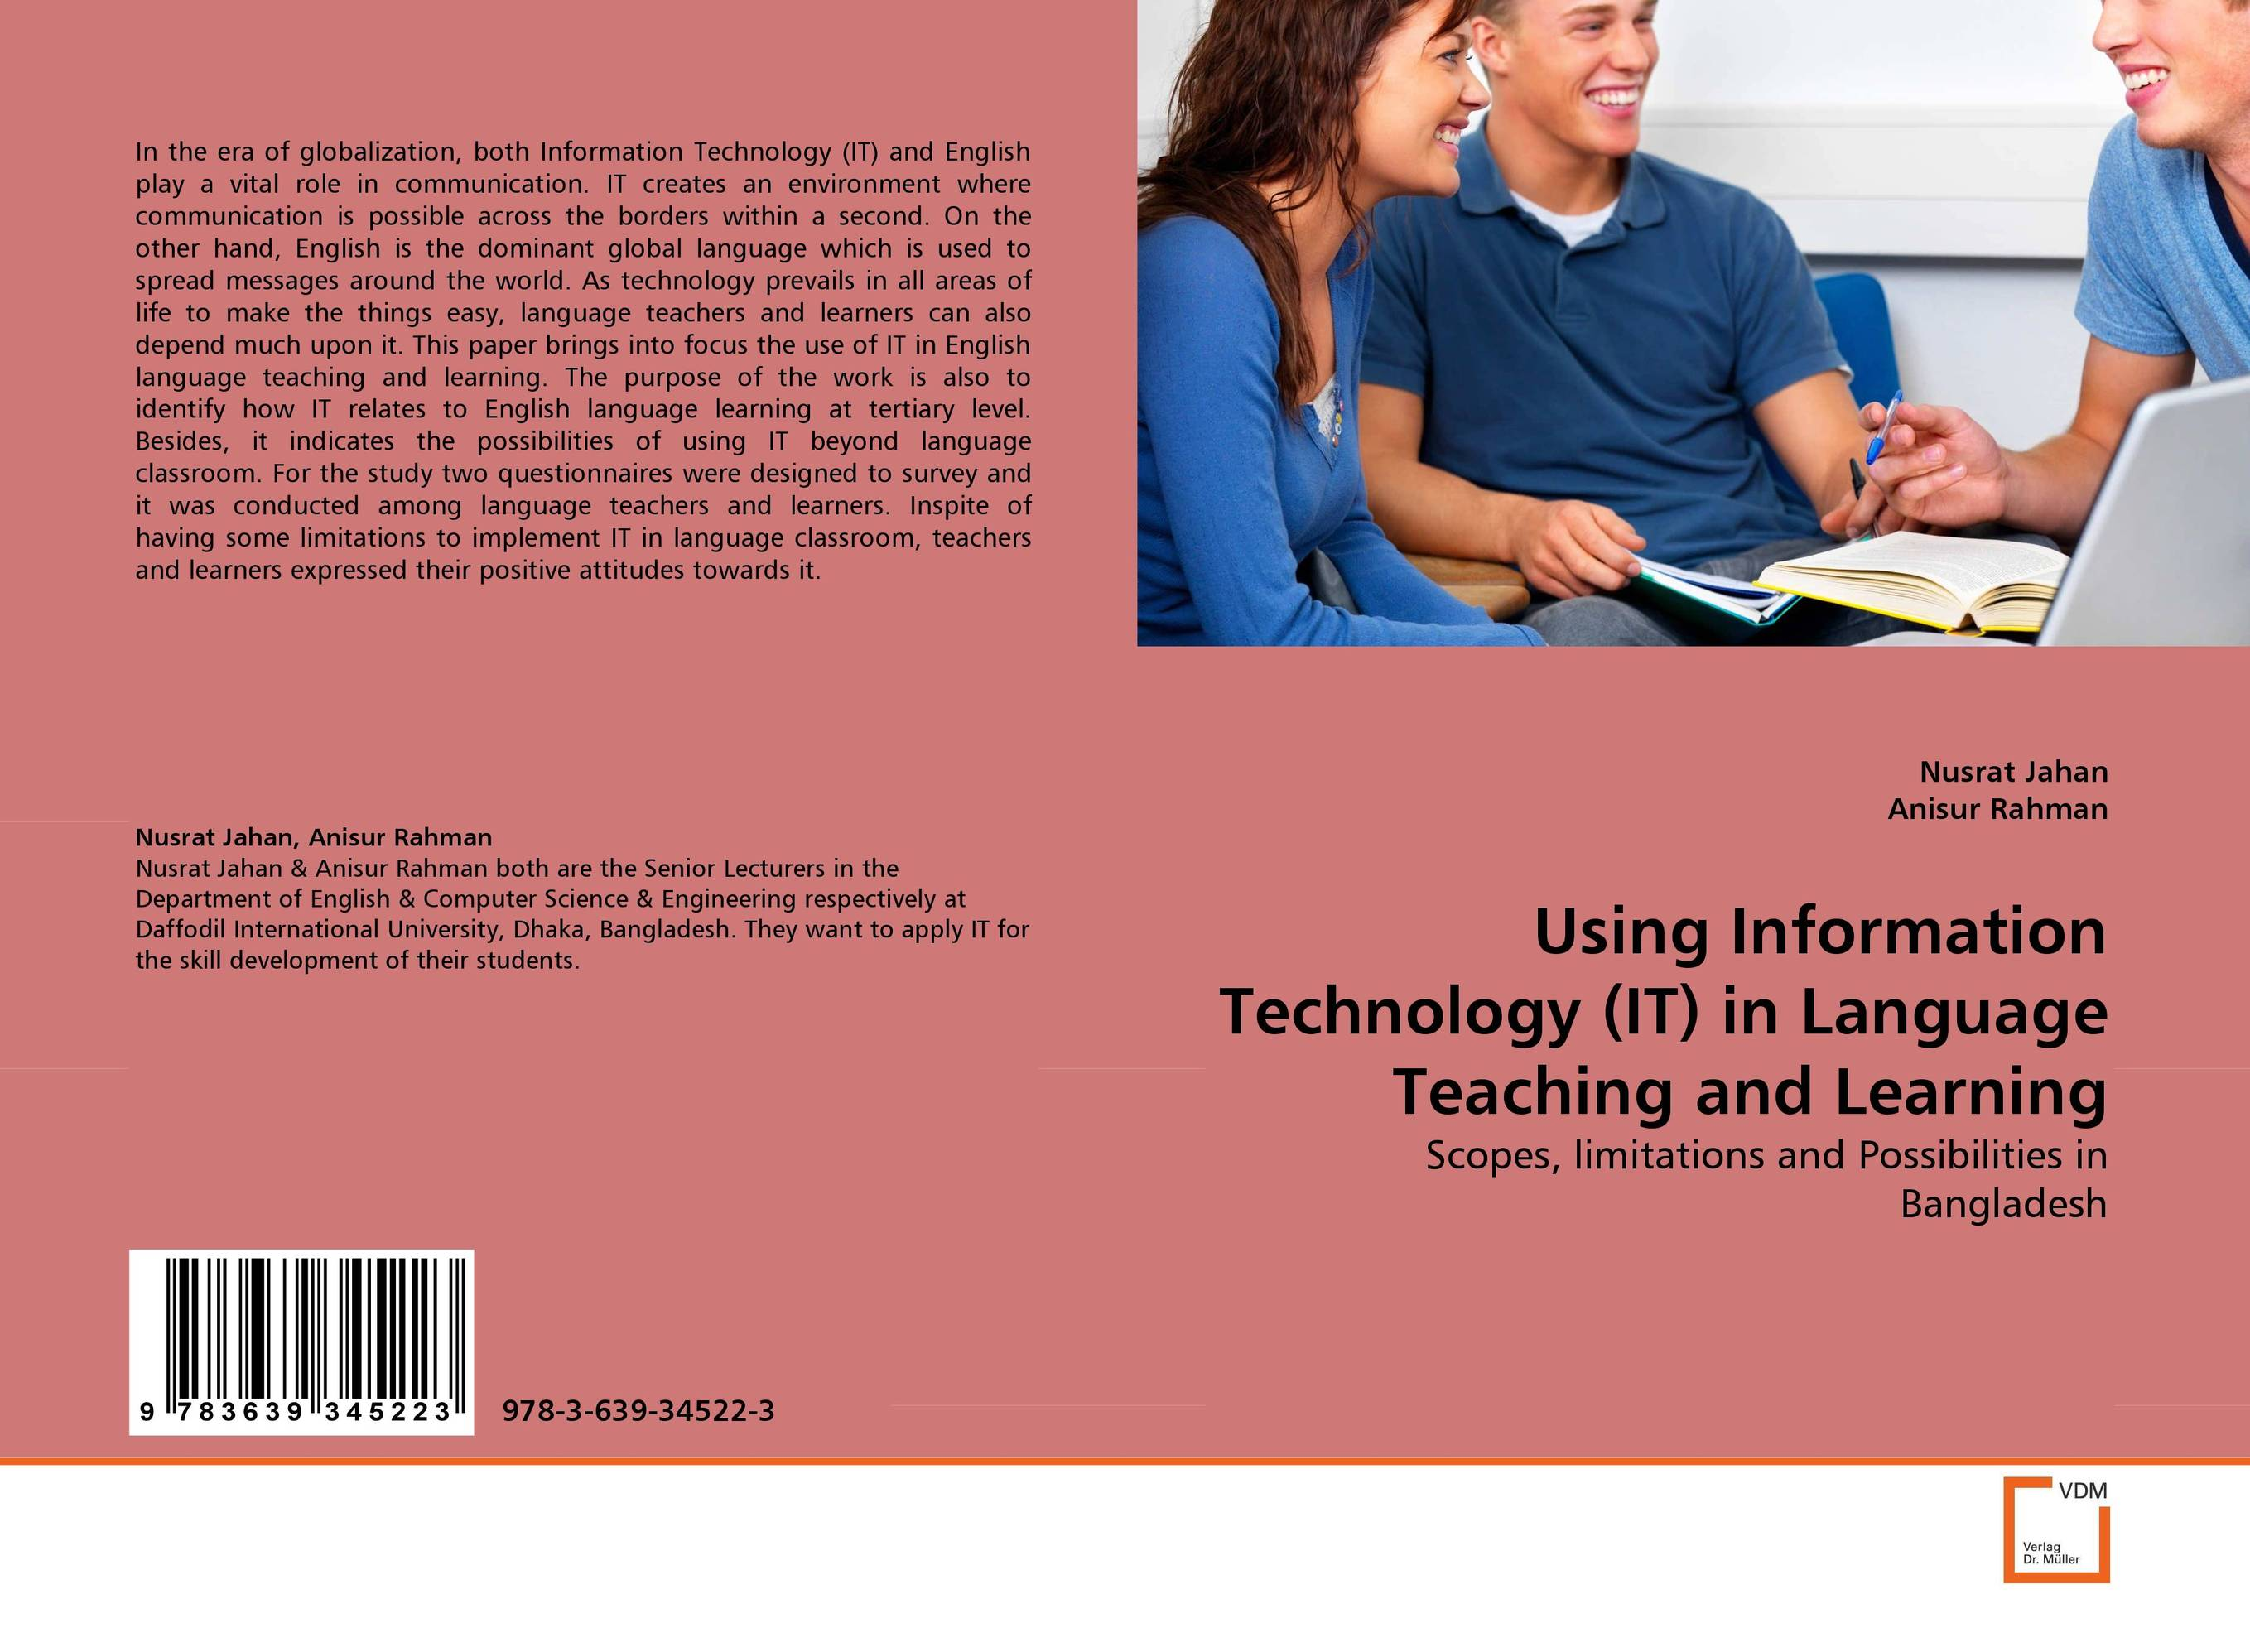 Using Information Technology (IT) in Language Teaching and Learning